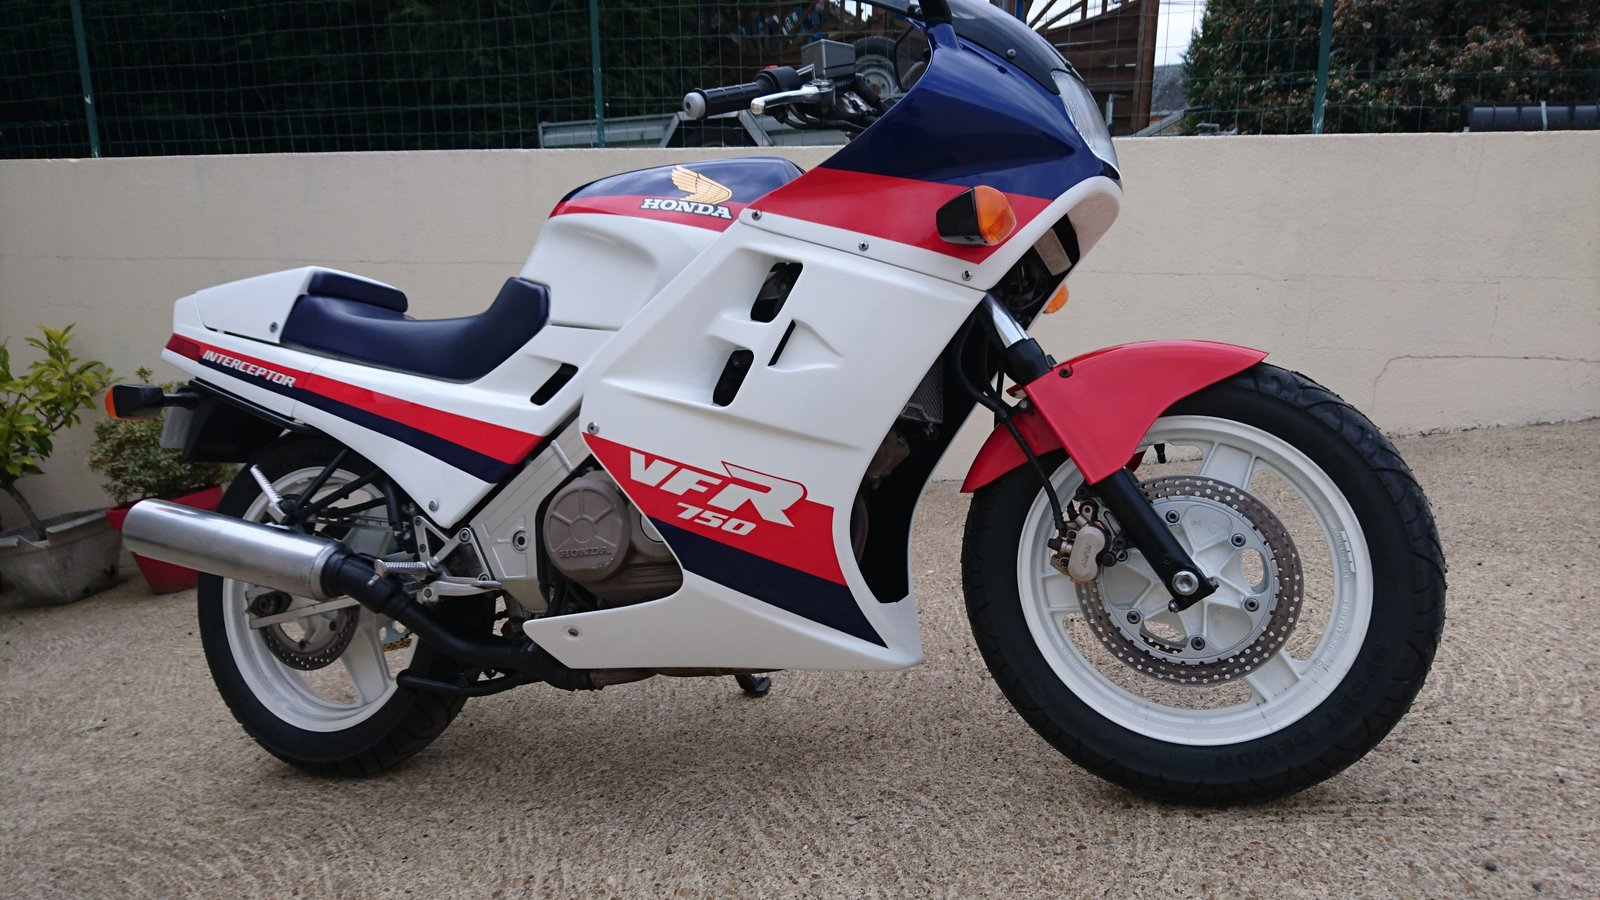 Projet VFR 750 F, 6X, NW6, RK - Page 3 200119055750322074